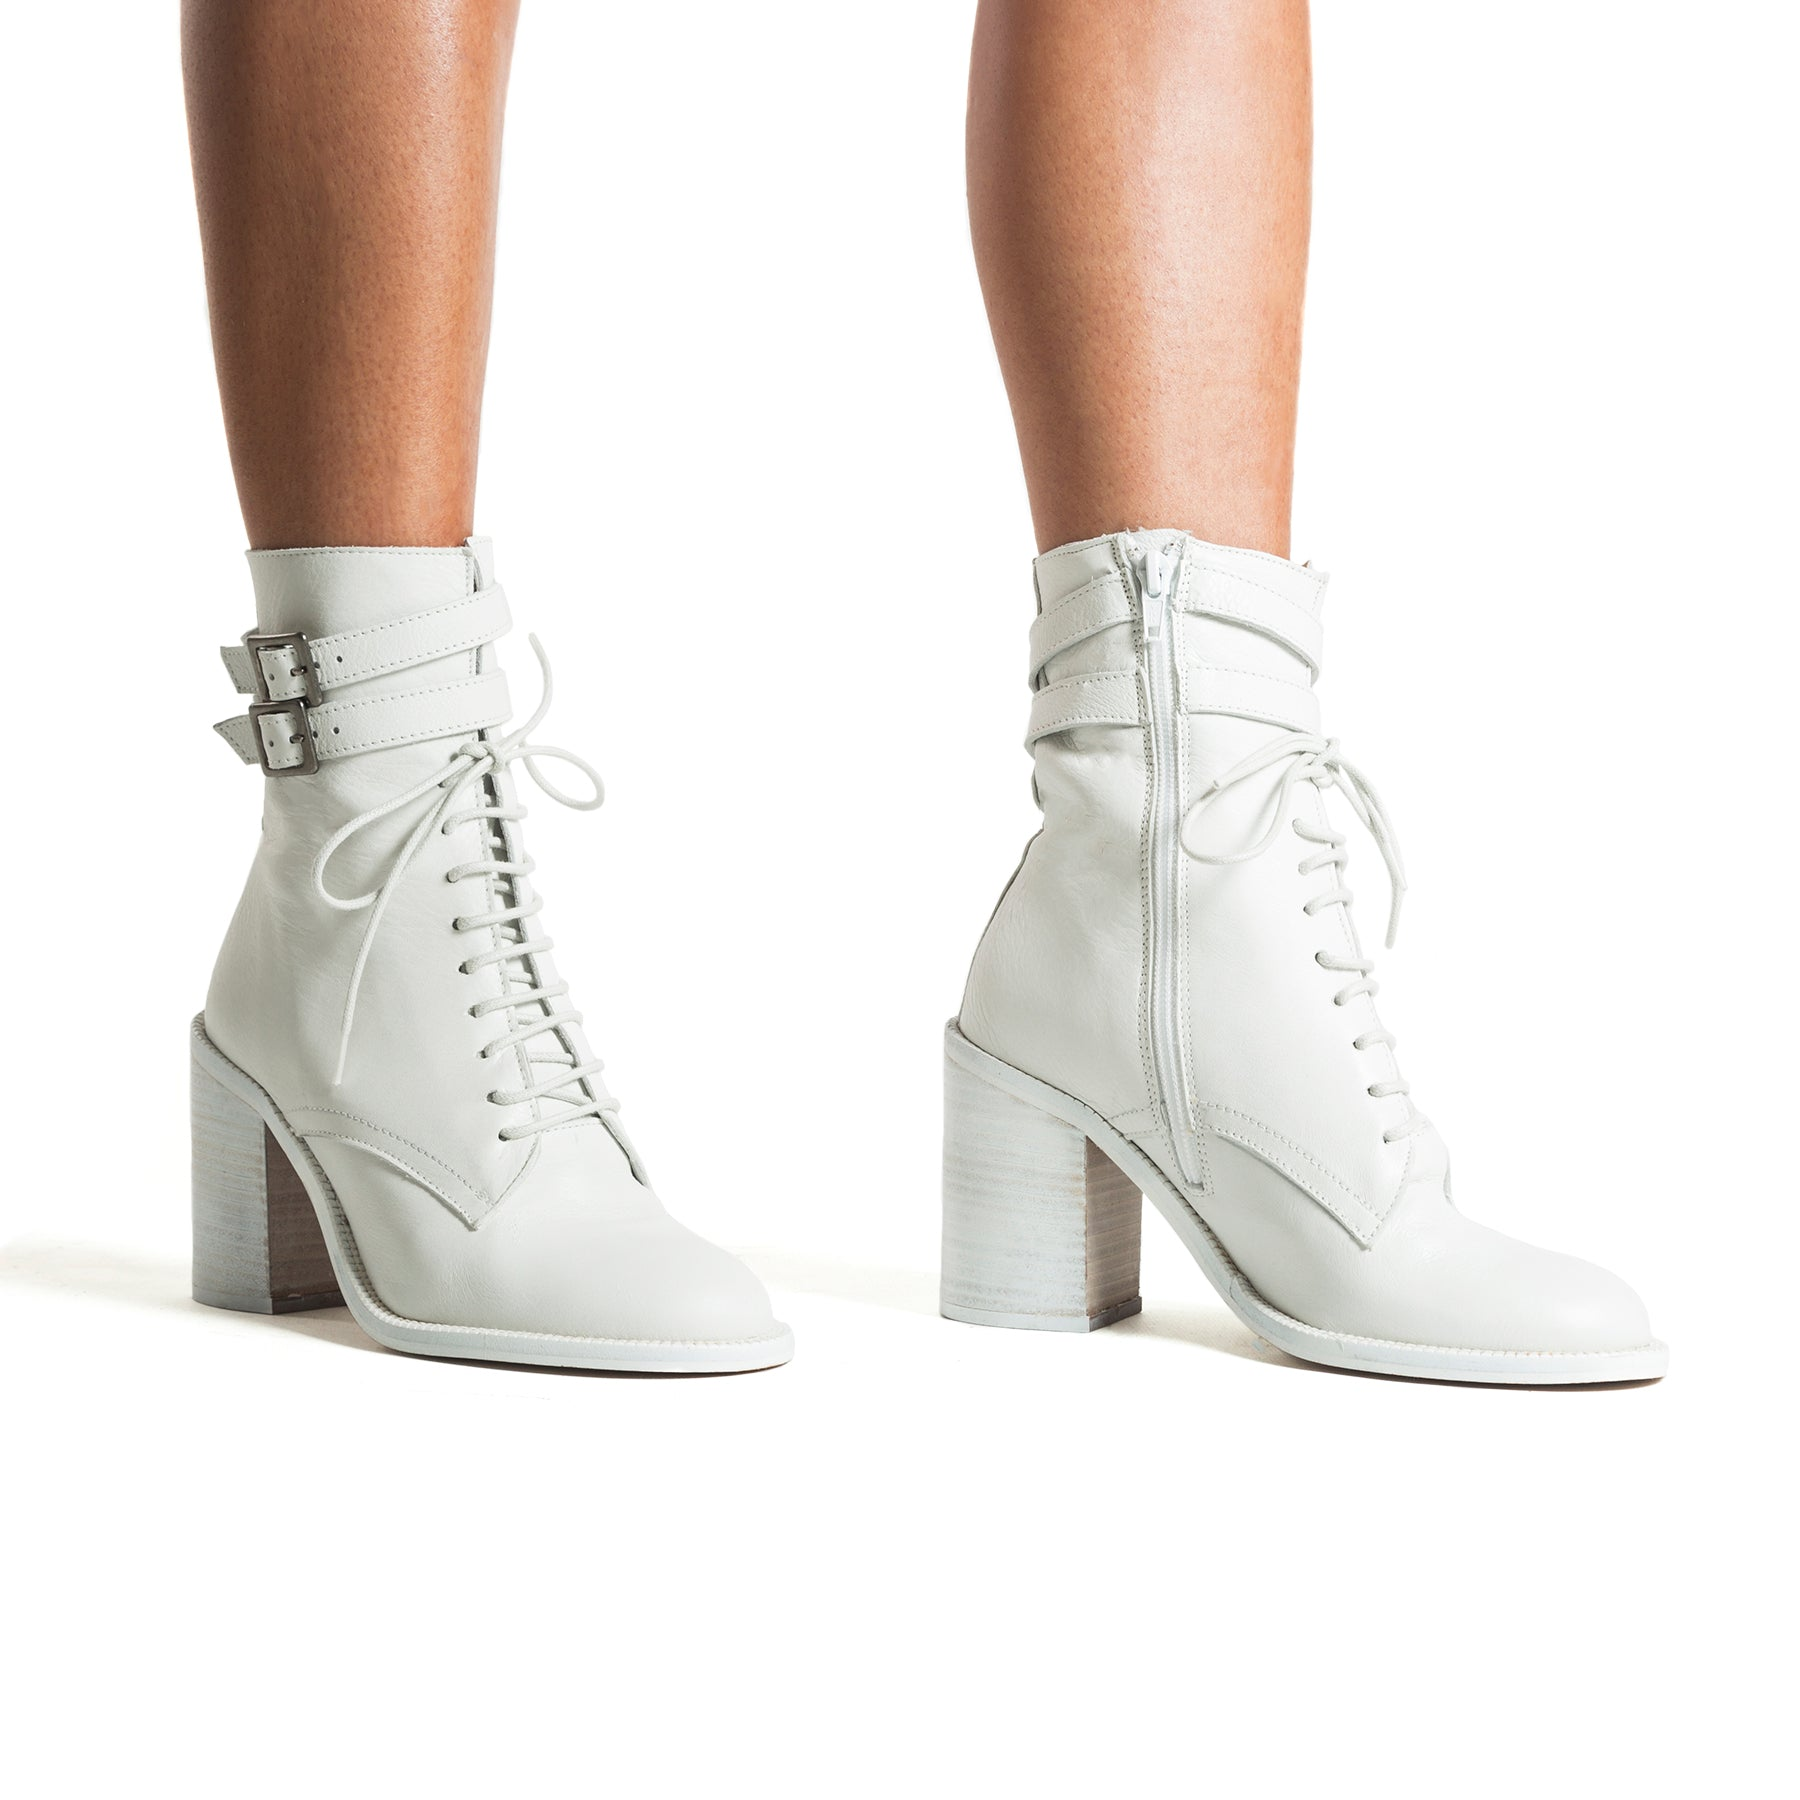 Pula White Leather Booties